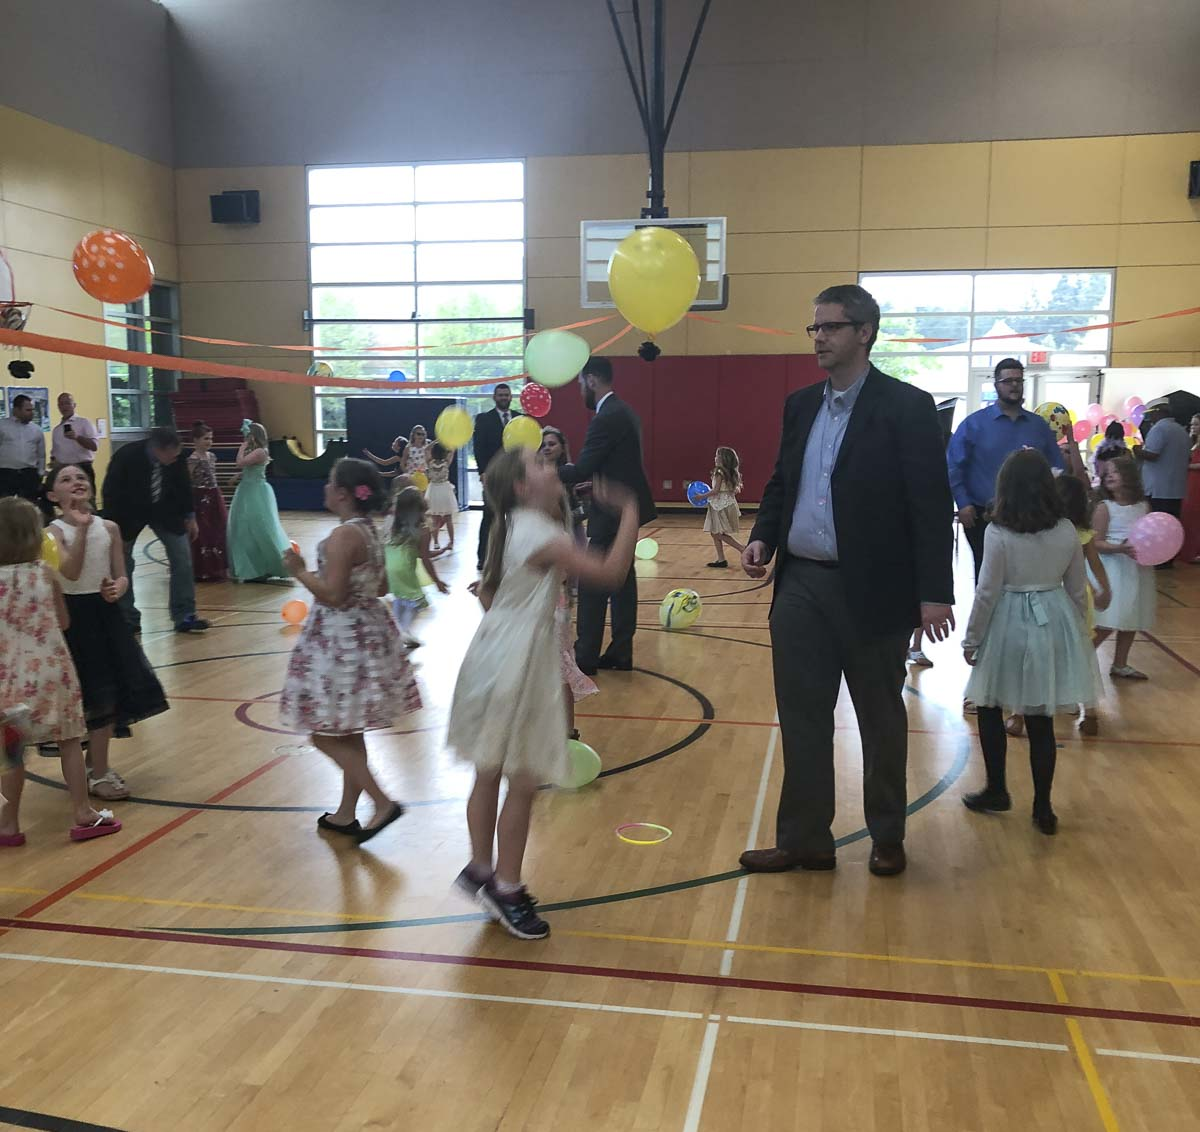 The Camas–Washougal Community Chest invites them to enjoy an evening out with their daughter(s) for dancing, sweets, soft drinks, memorable photos and a friendly daddy dance-off contest. Photo courtesy of Camas-Washougal Community Chest